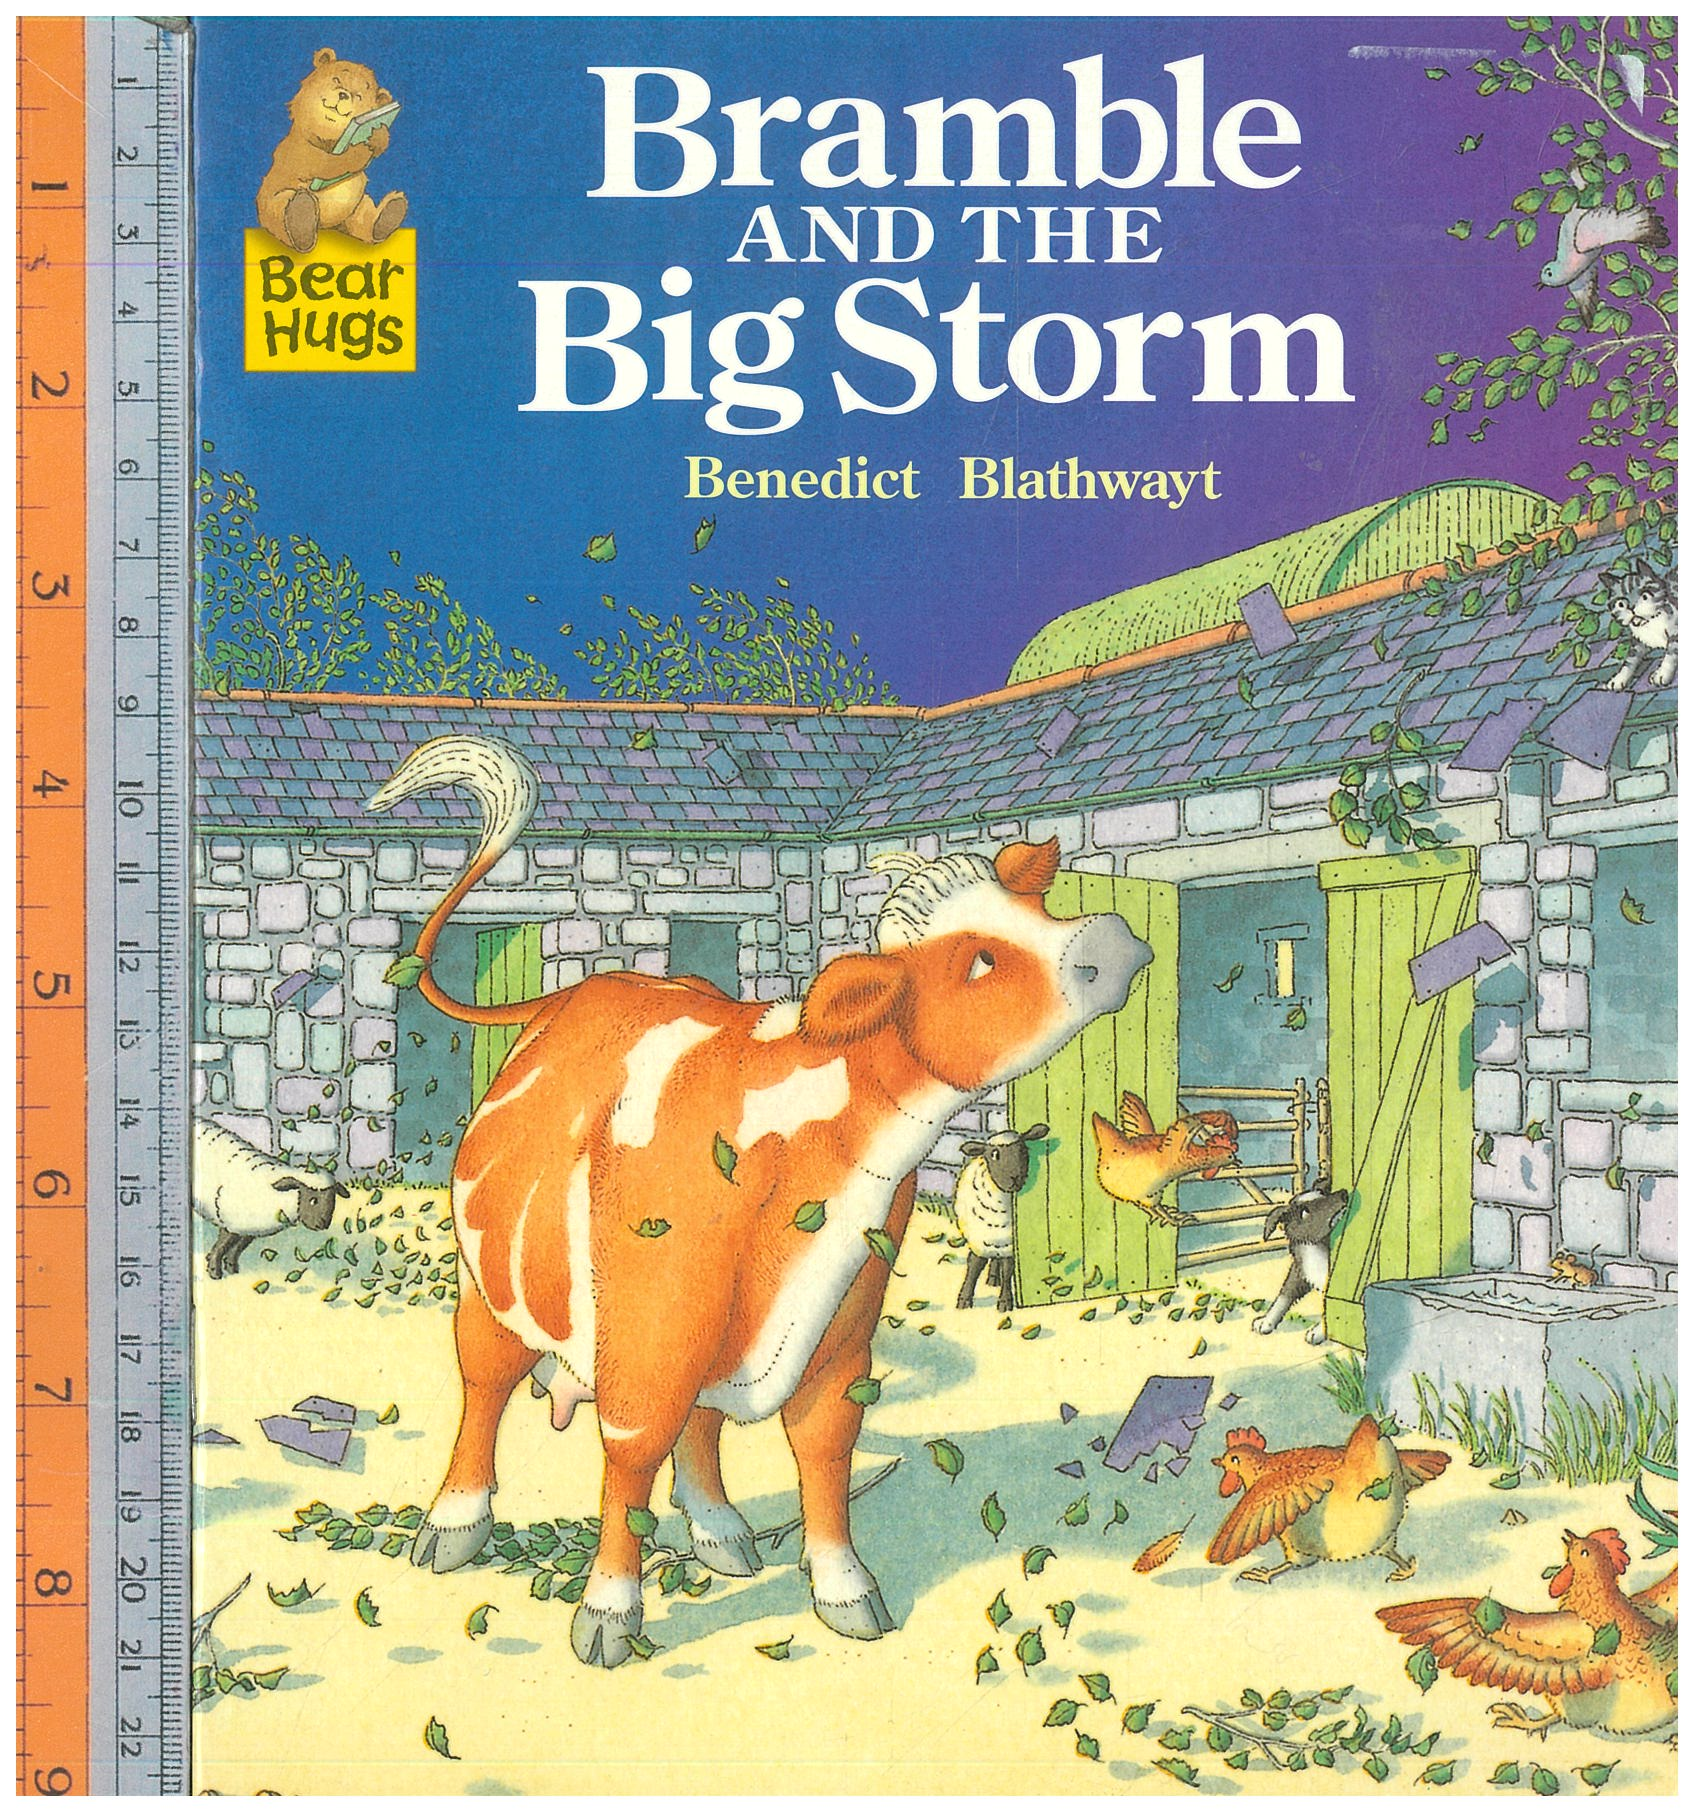 Bramble big storm